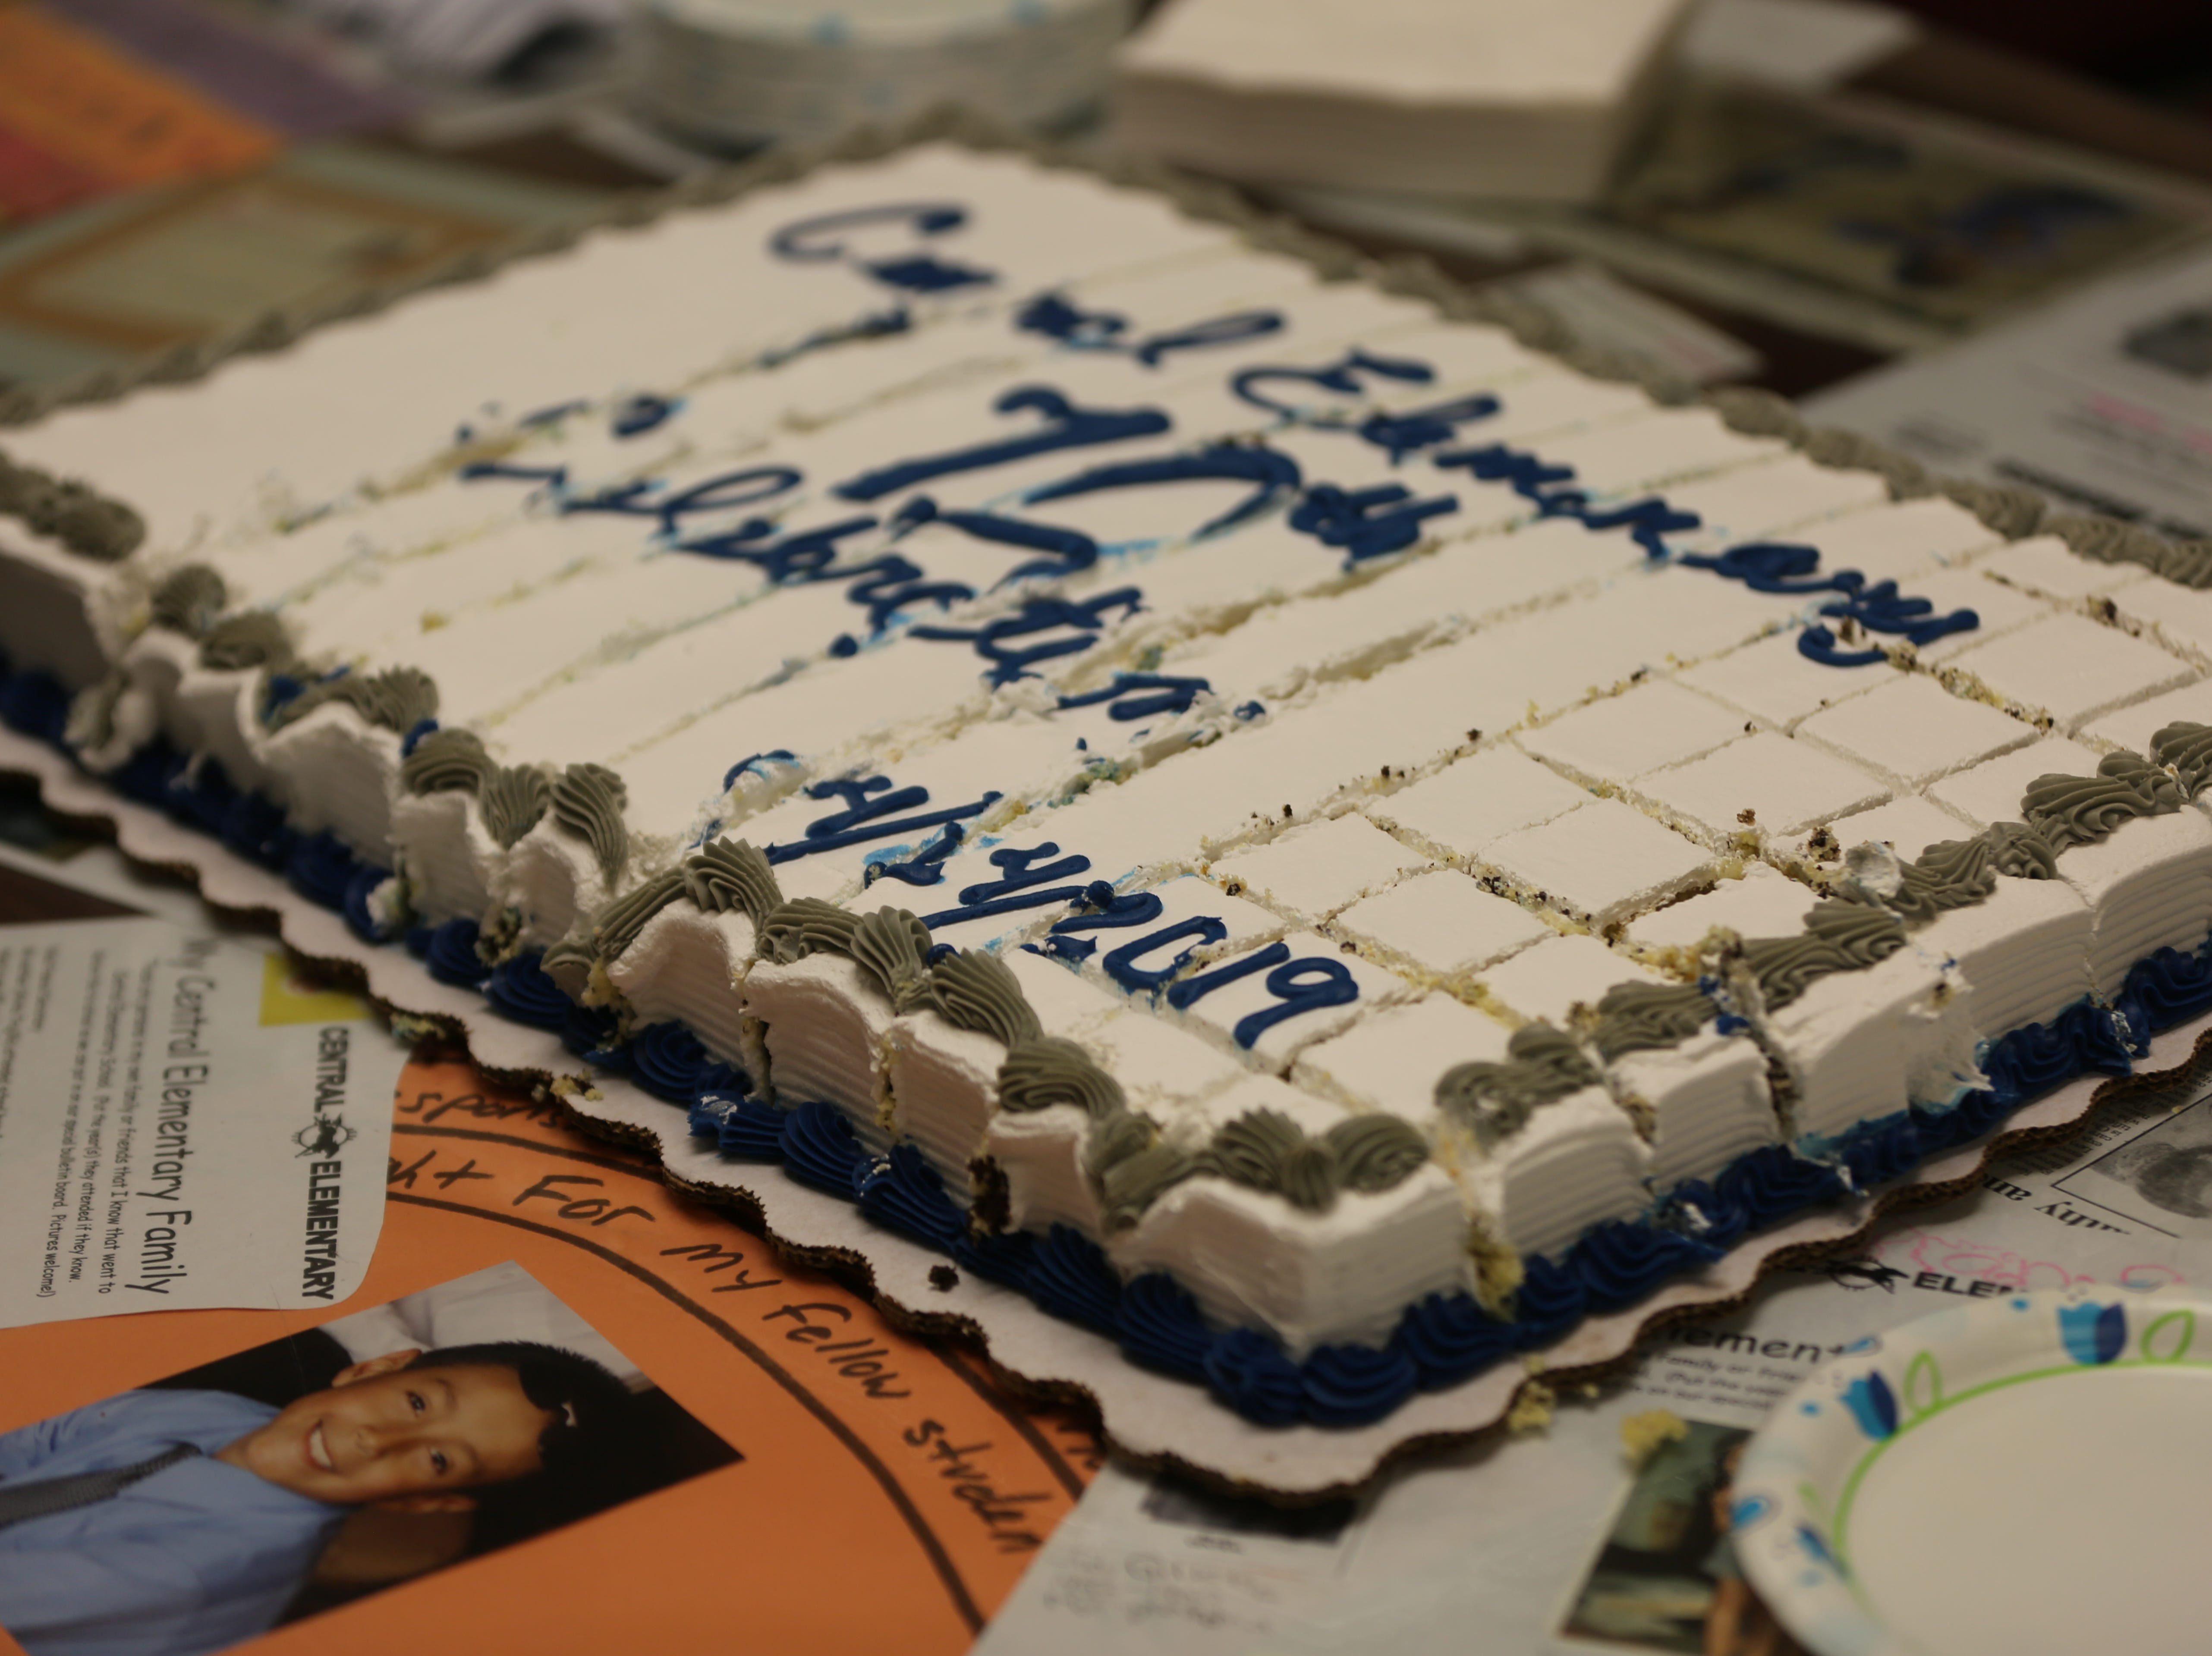 A cake already cut into pieces was made for Central Elementary School's 70th anniversary.